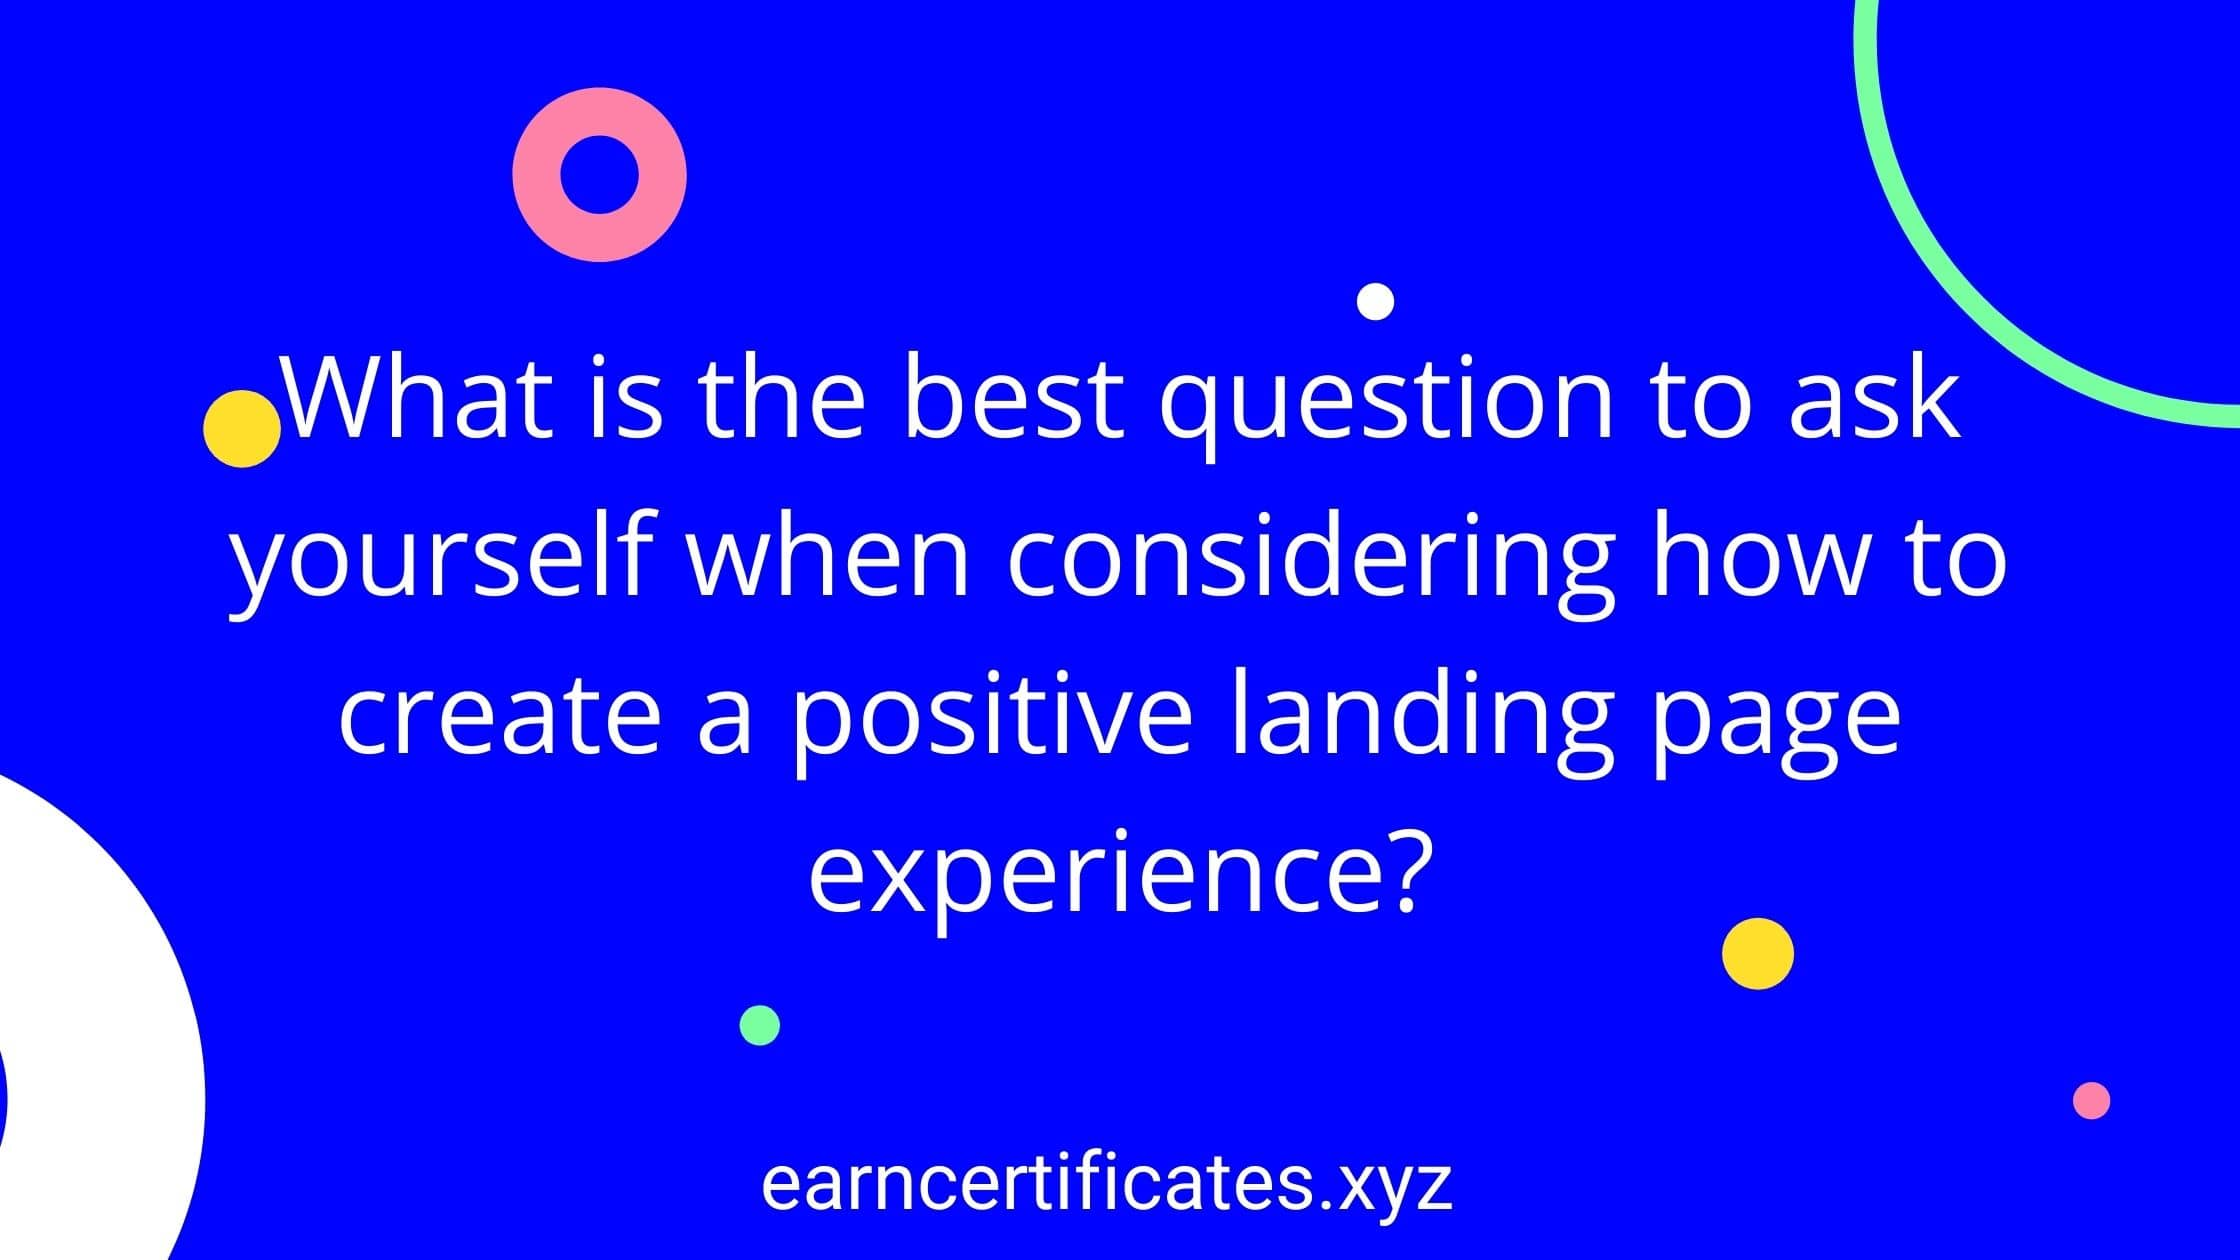 What is the best question to ask yourself when considering how to create a positive landing page experience?